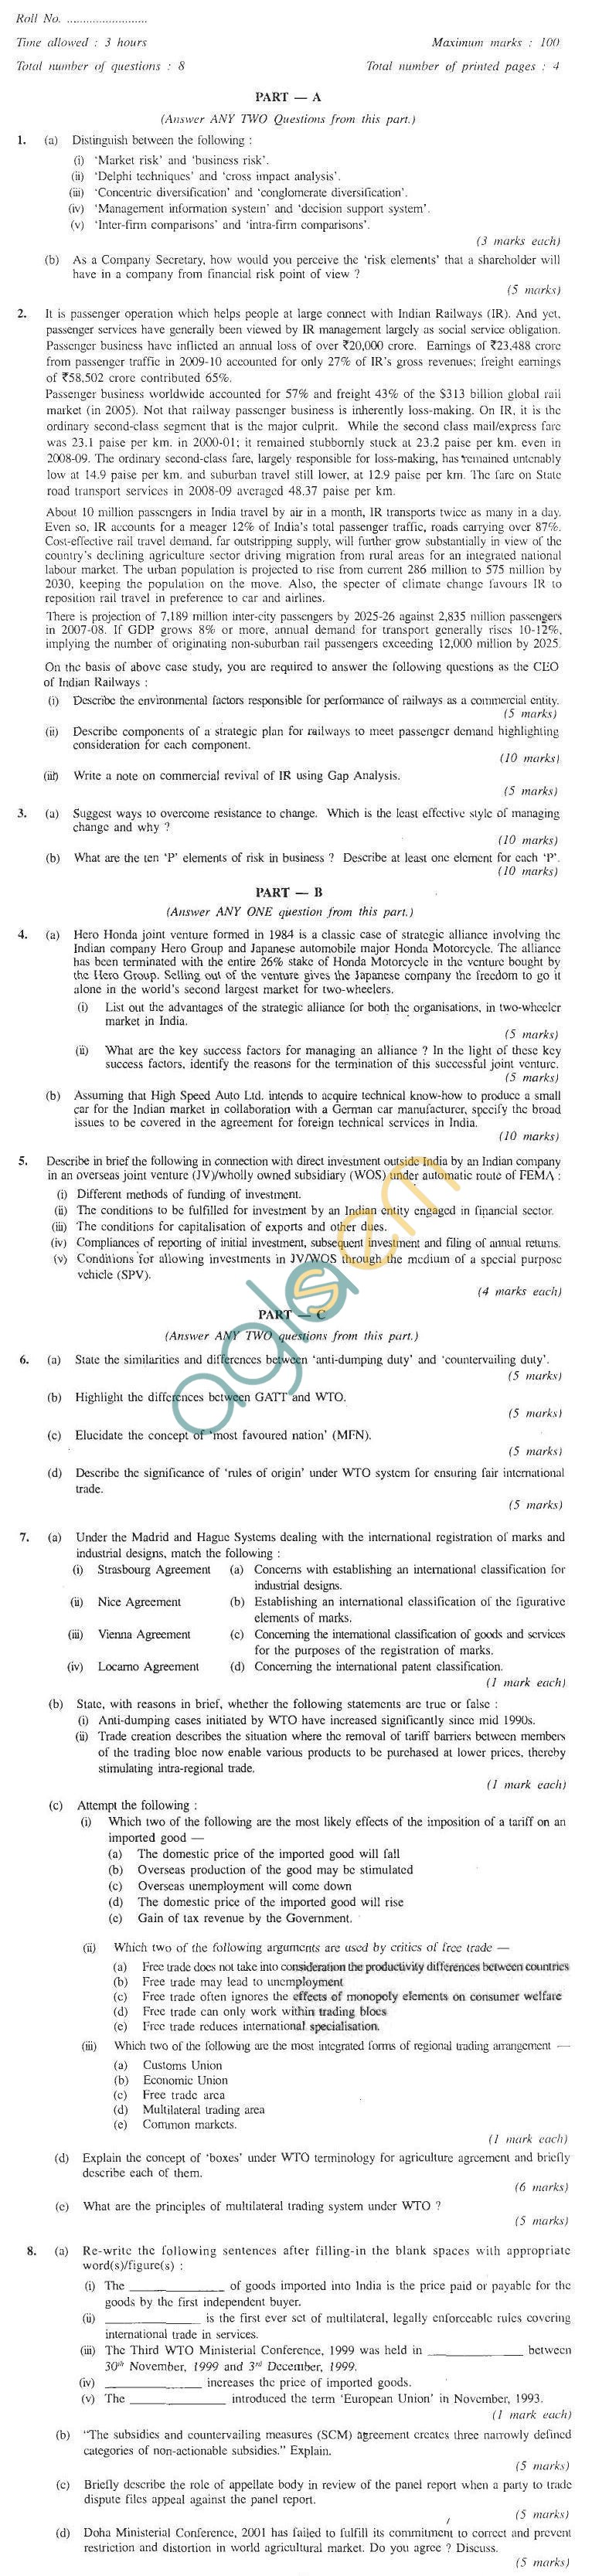 CS Professional Question Papers Jun 2011 - Advanced Tax Laws and Practice Module III